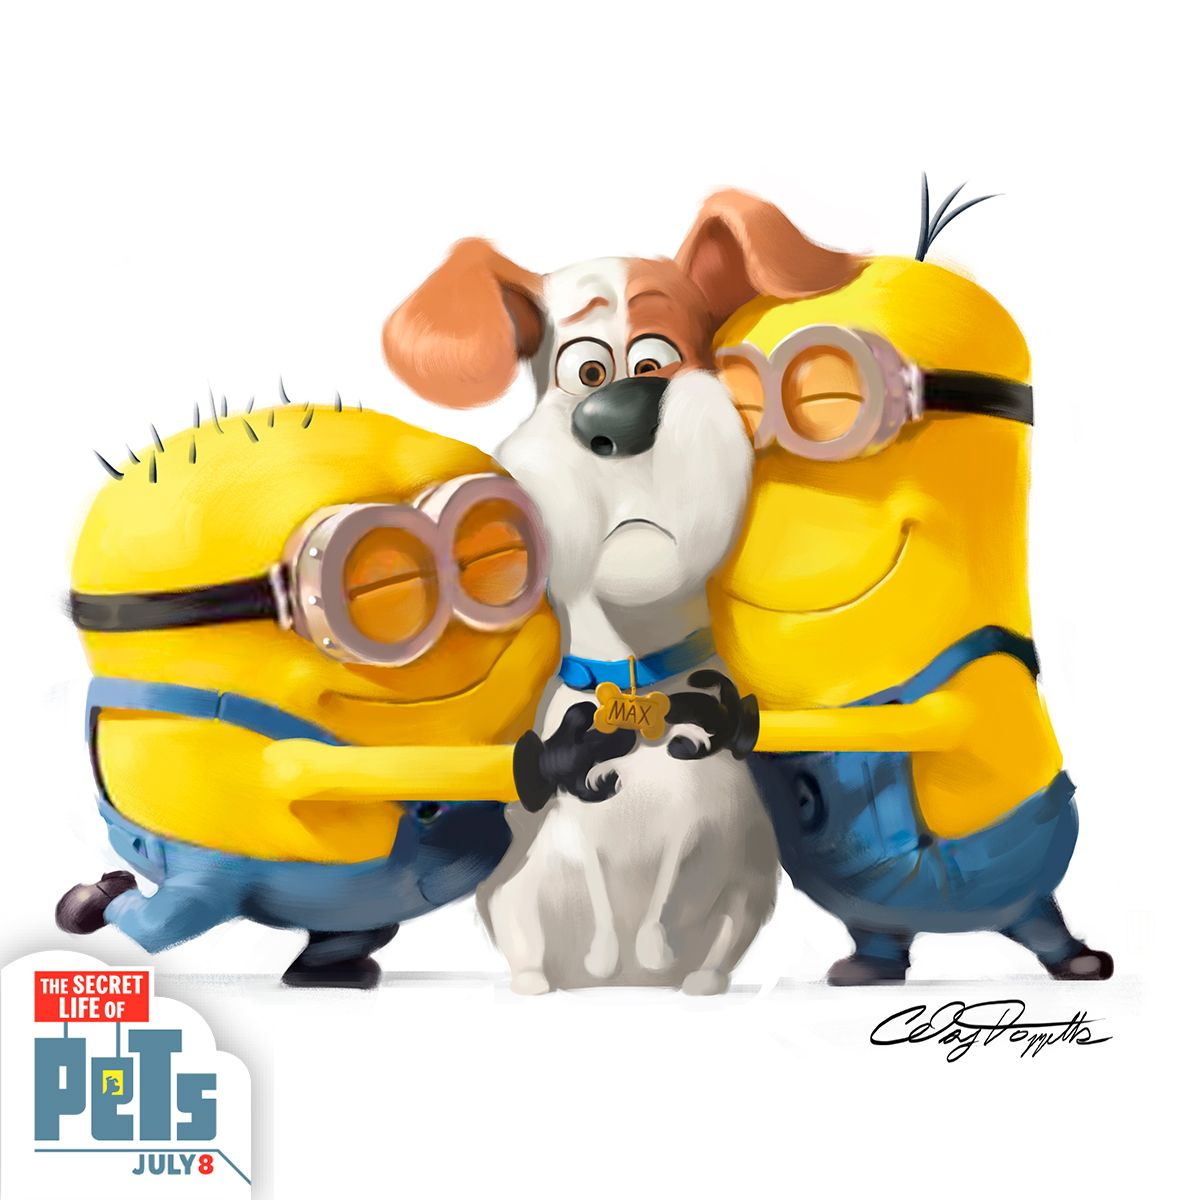 In celebration of National Pet Month, the minionnation